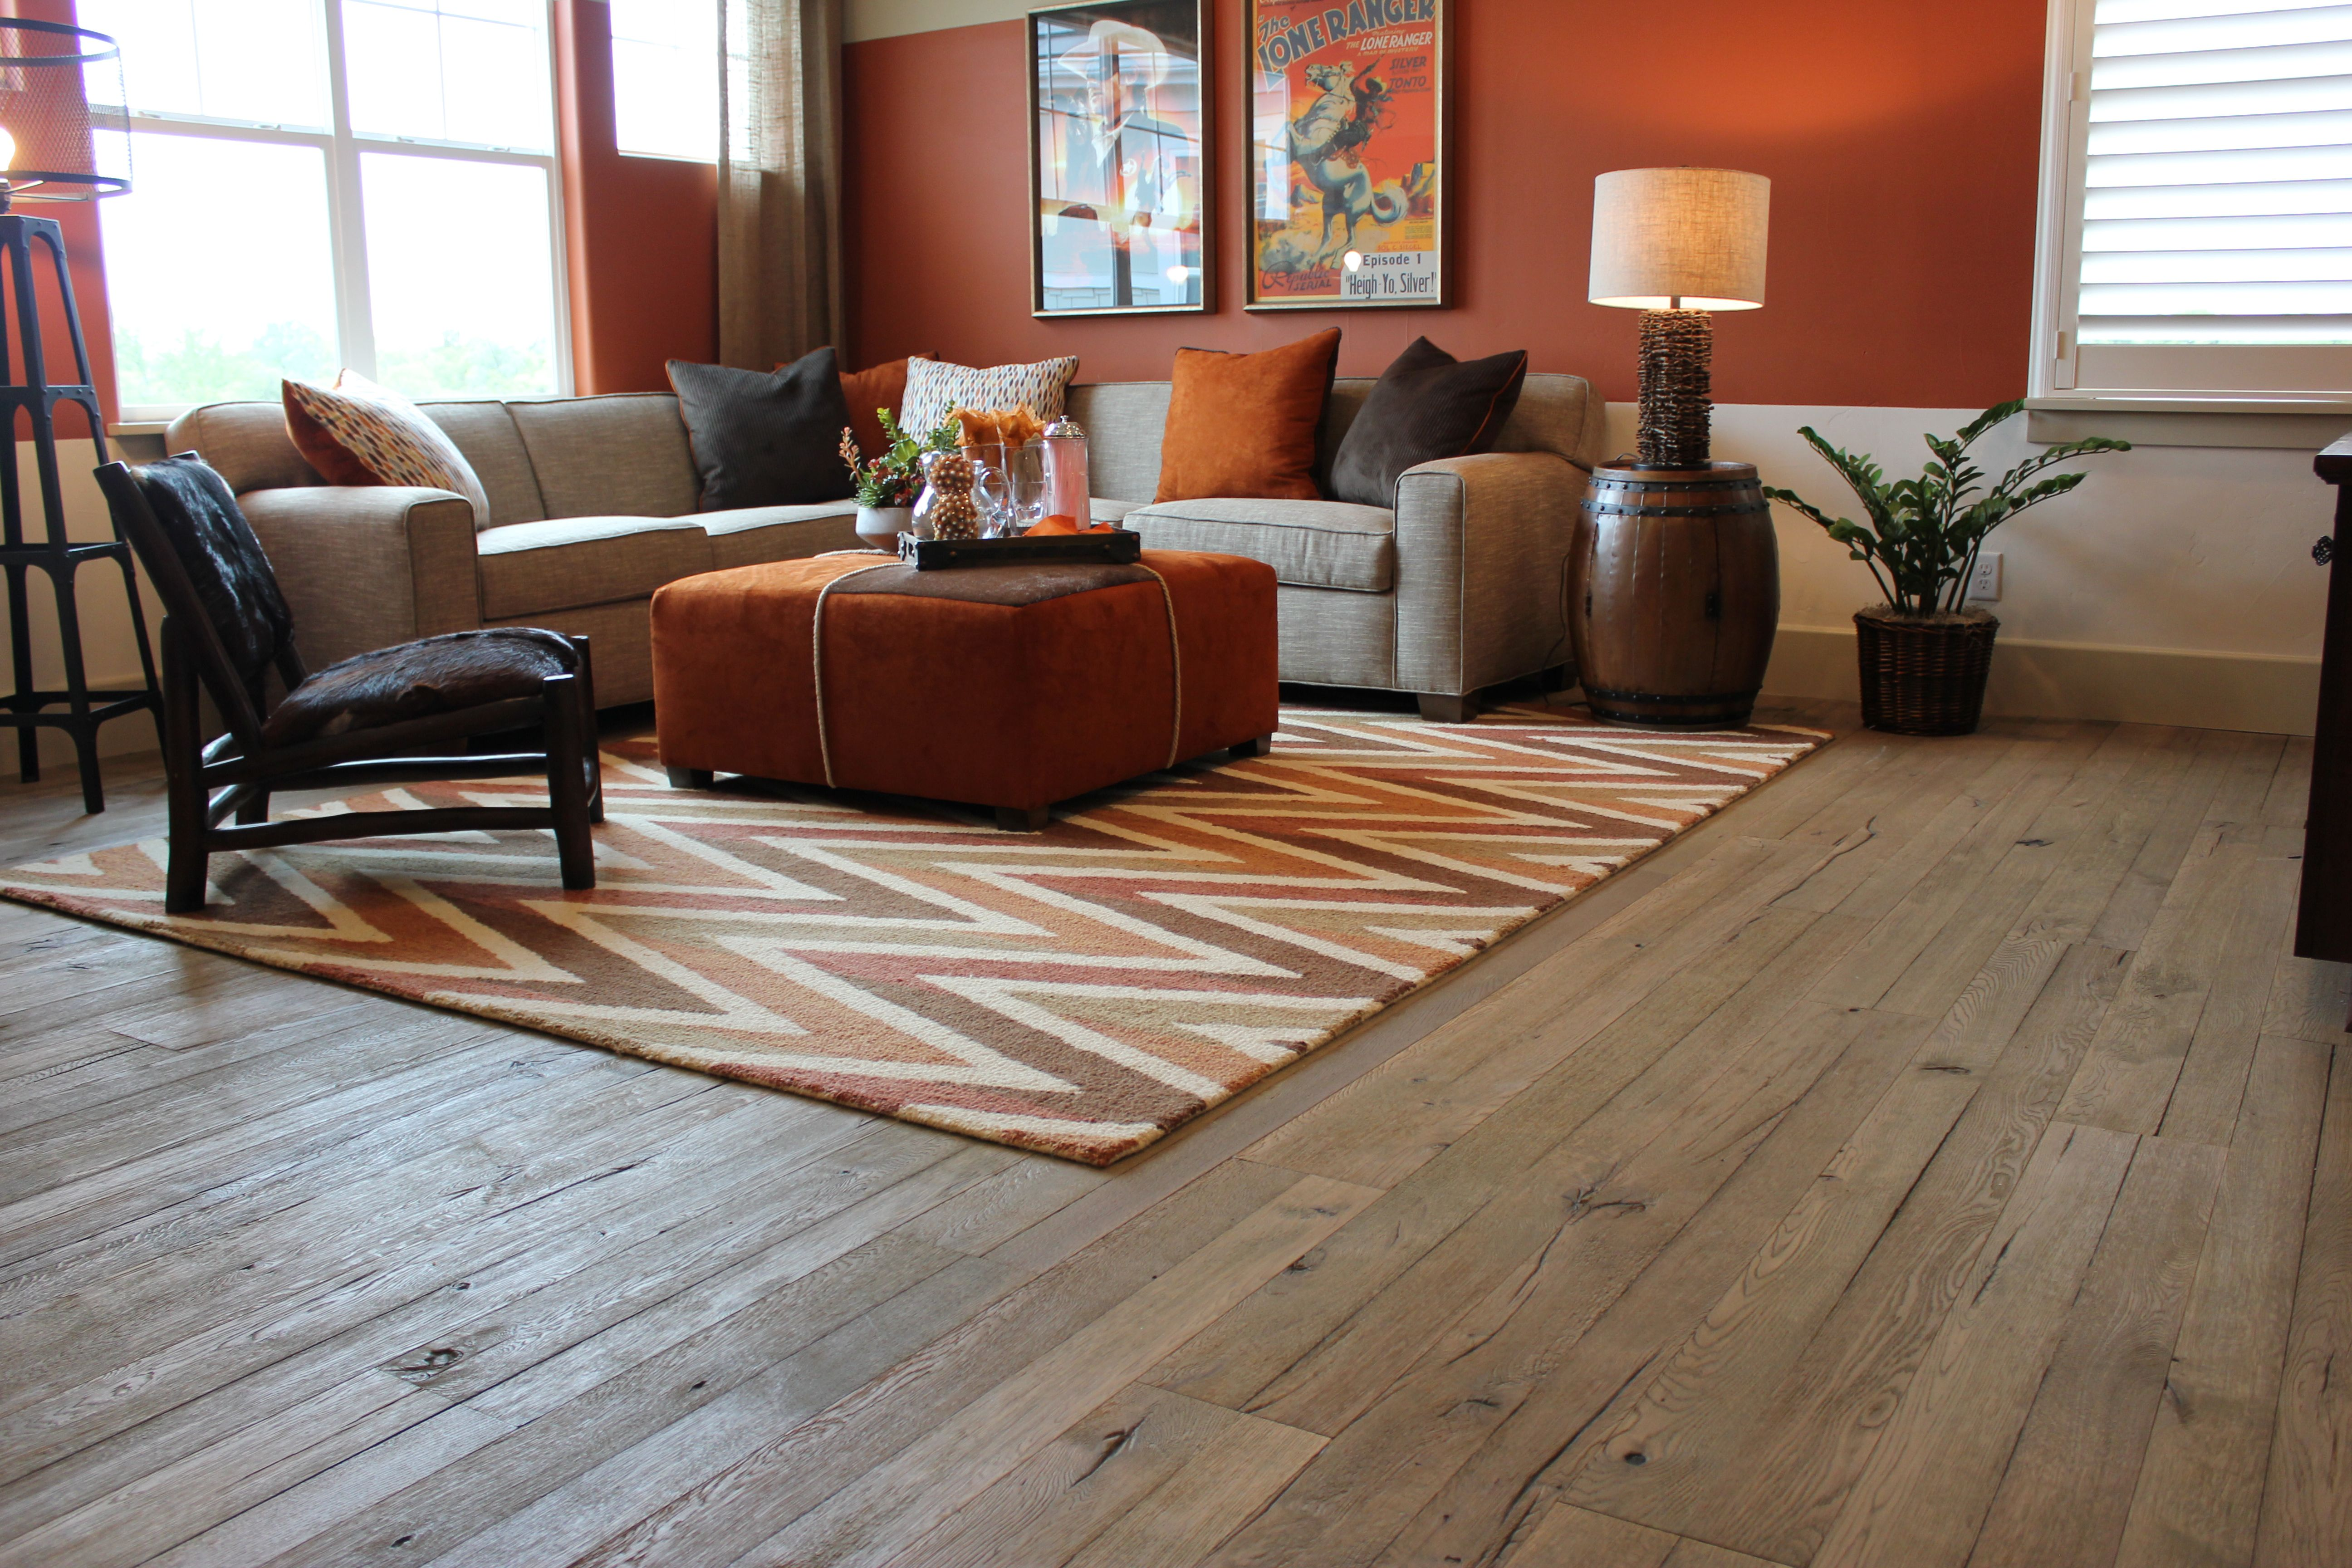 Duchateau Hardwood Flooring And Area Rug Installed At Tim Lewis